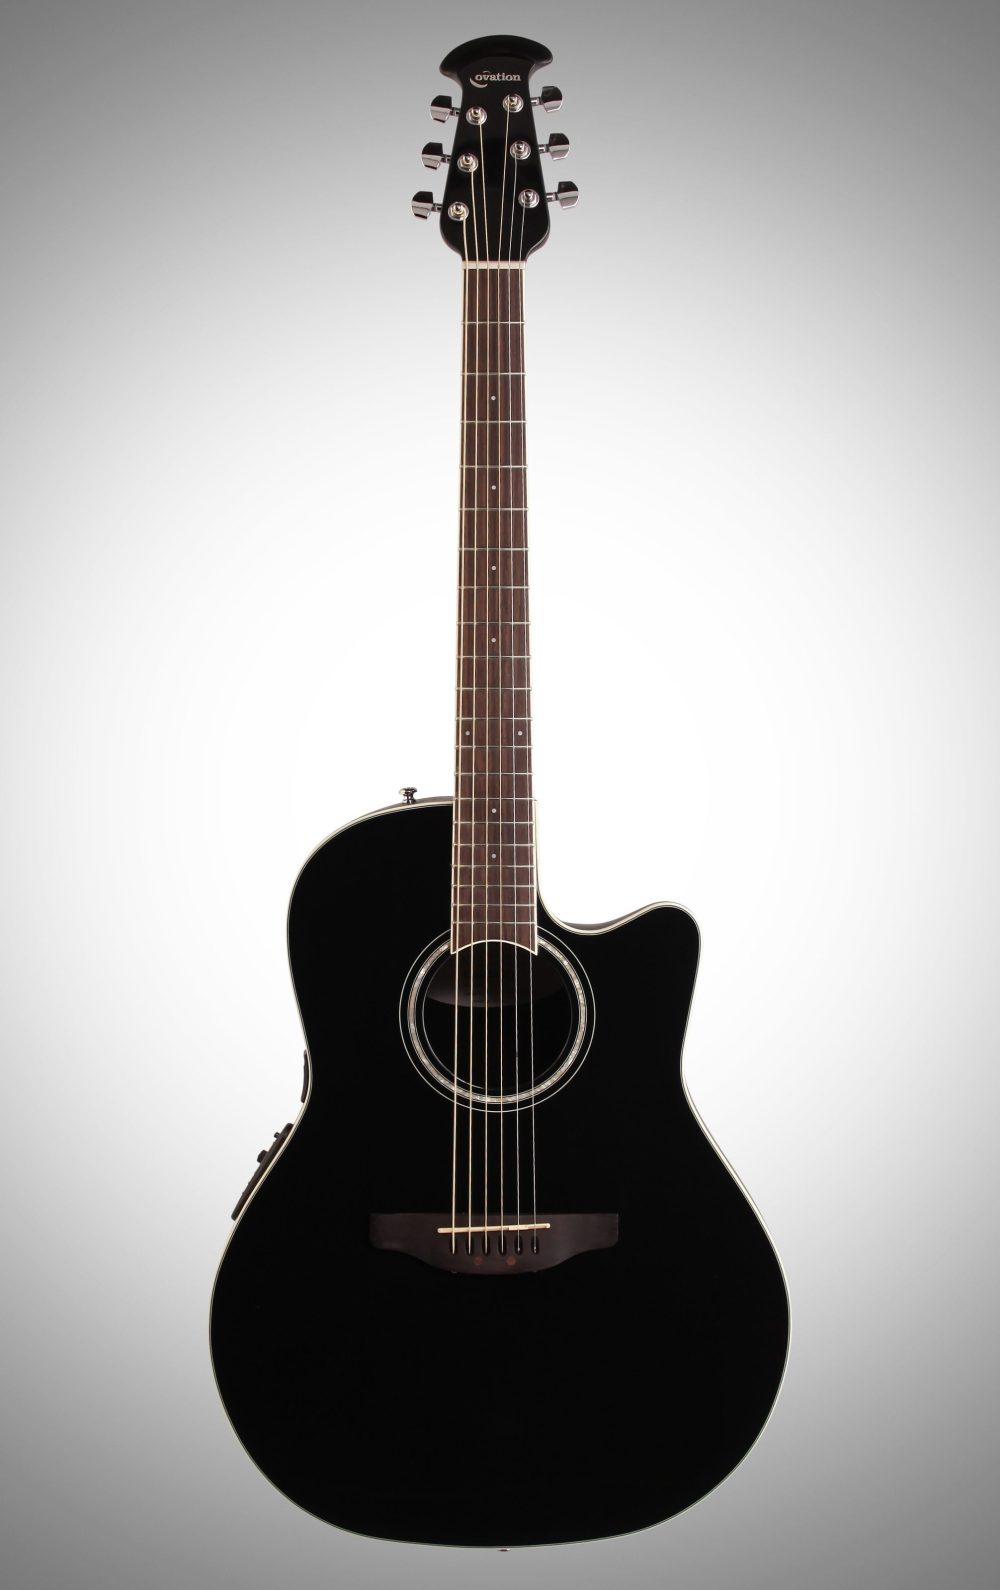 medium resolution of ovation cs24 celebrity standard acoustic electric guitar black full straight front